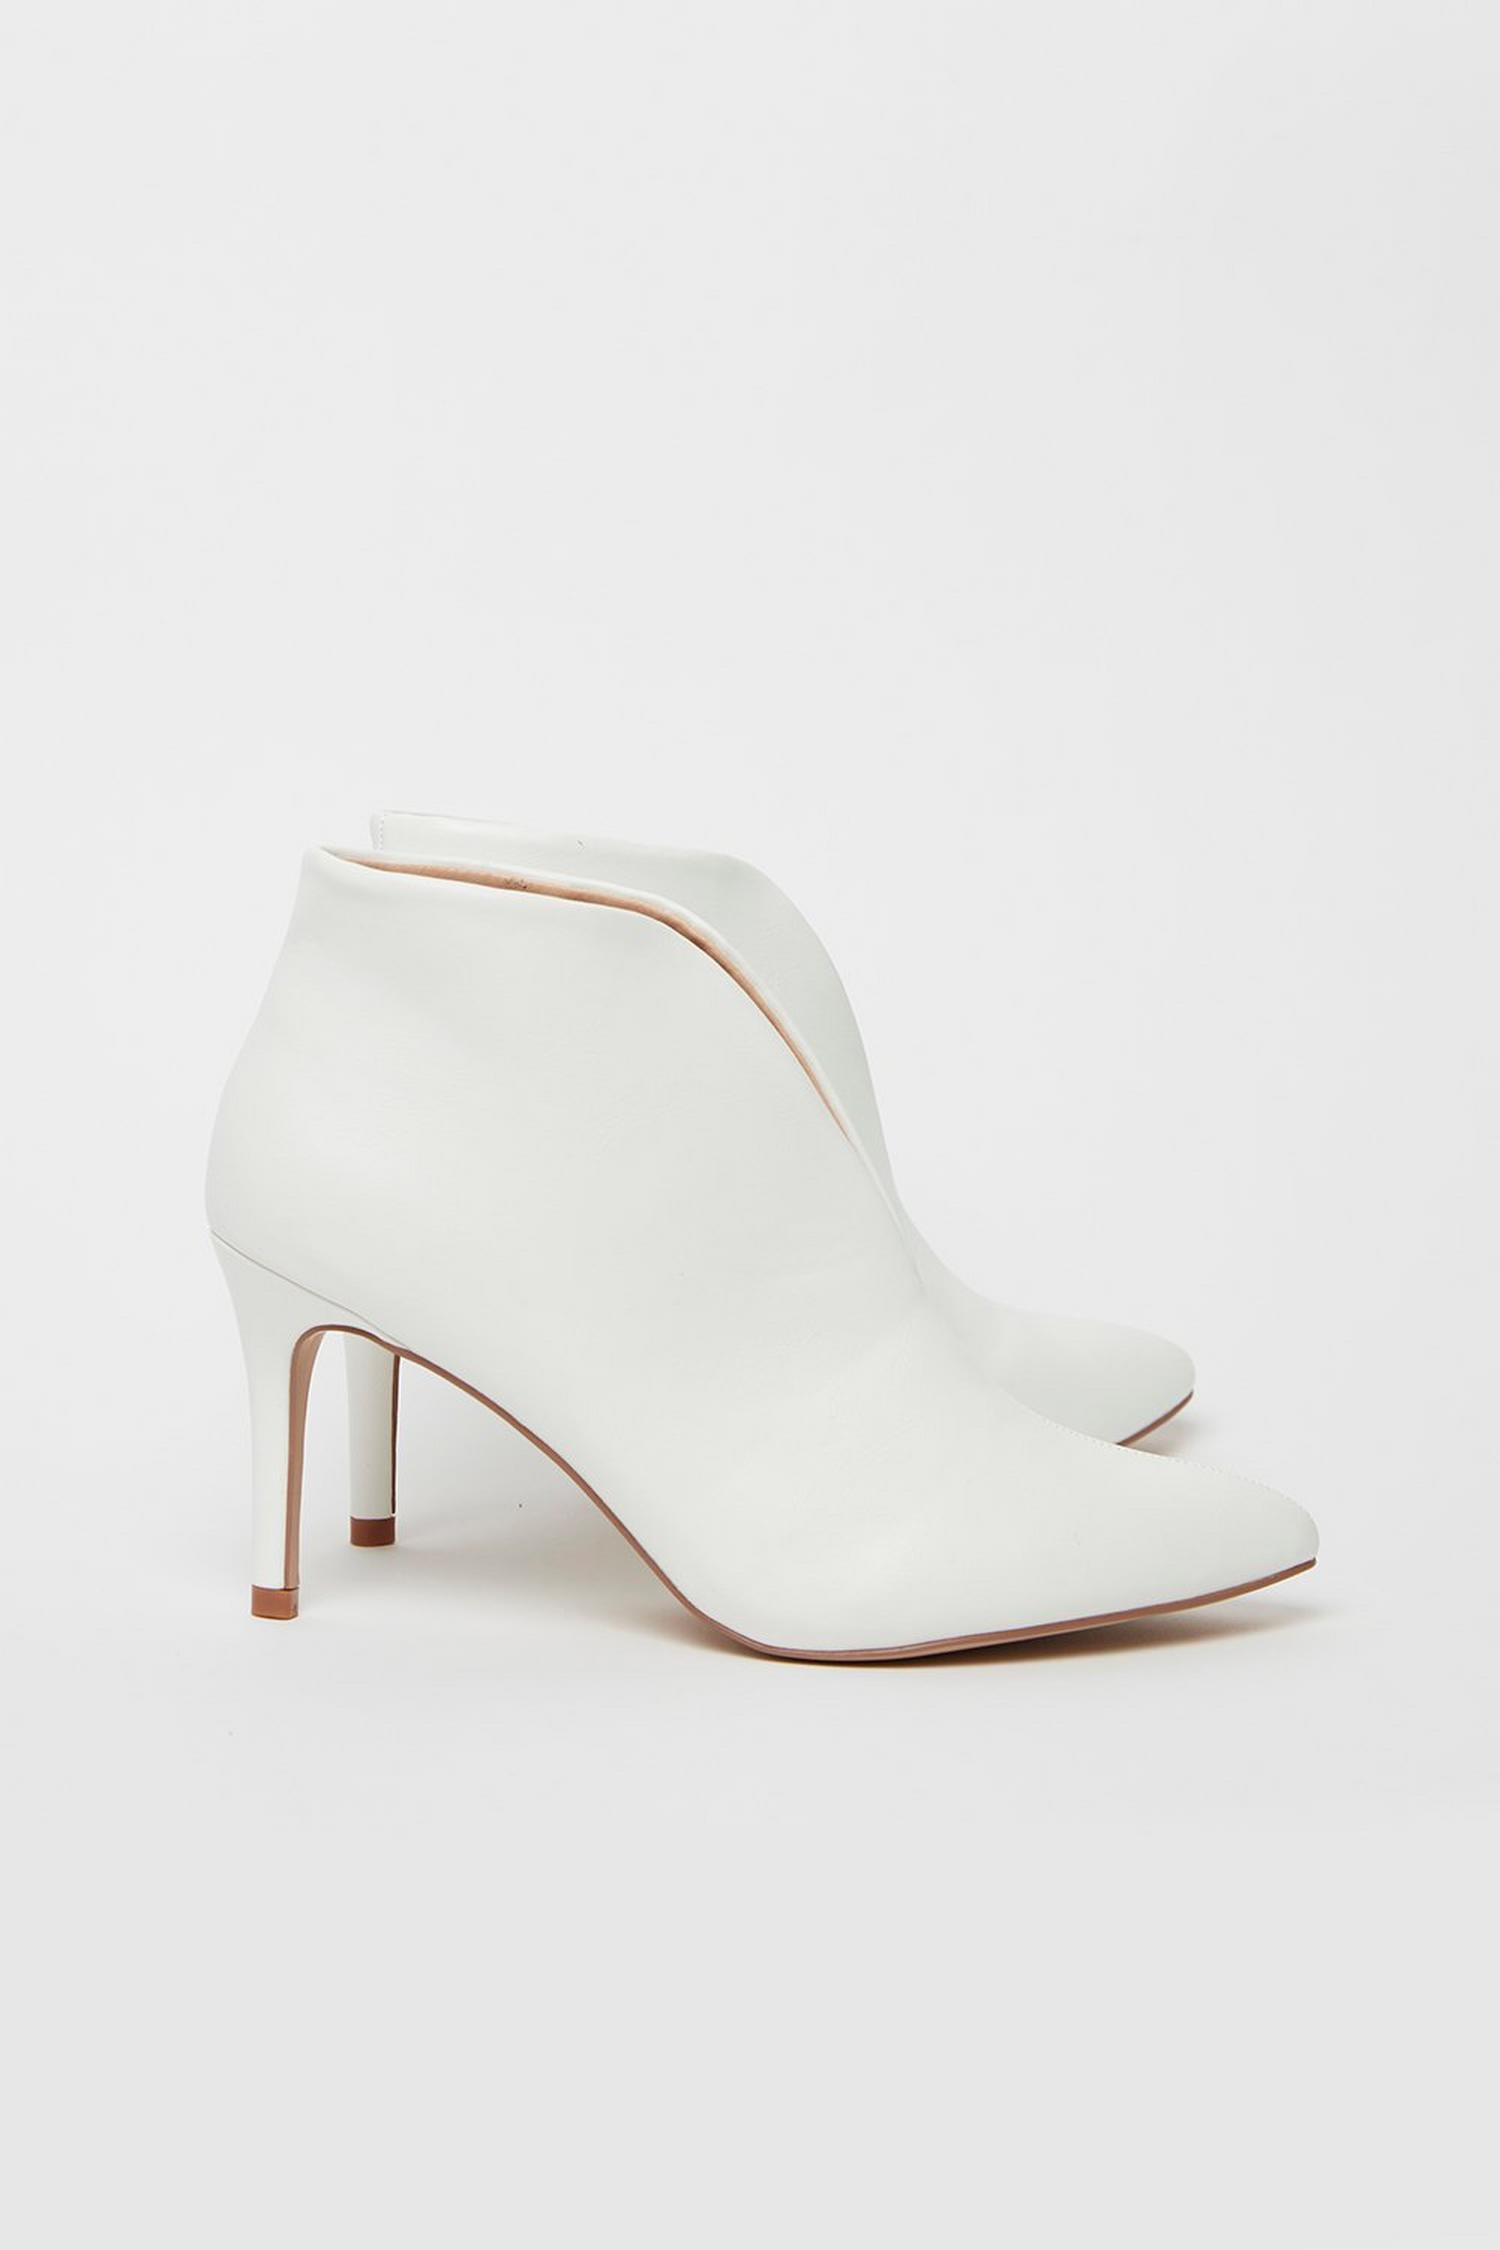 173 White High Heel Shoe Boot image number 2